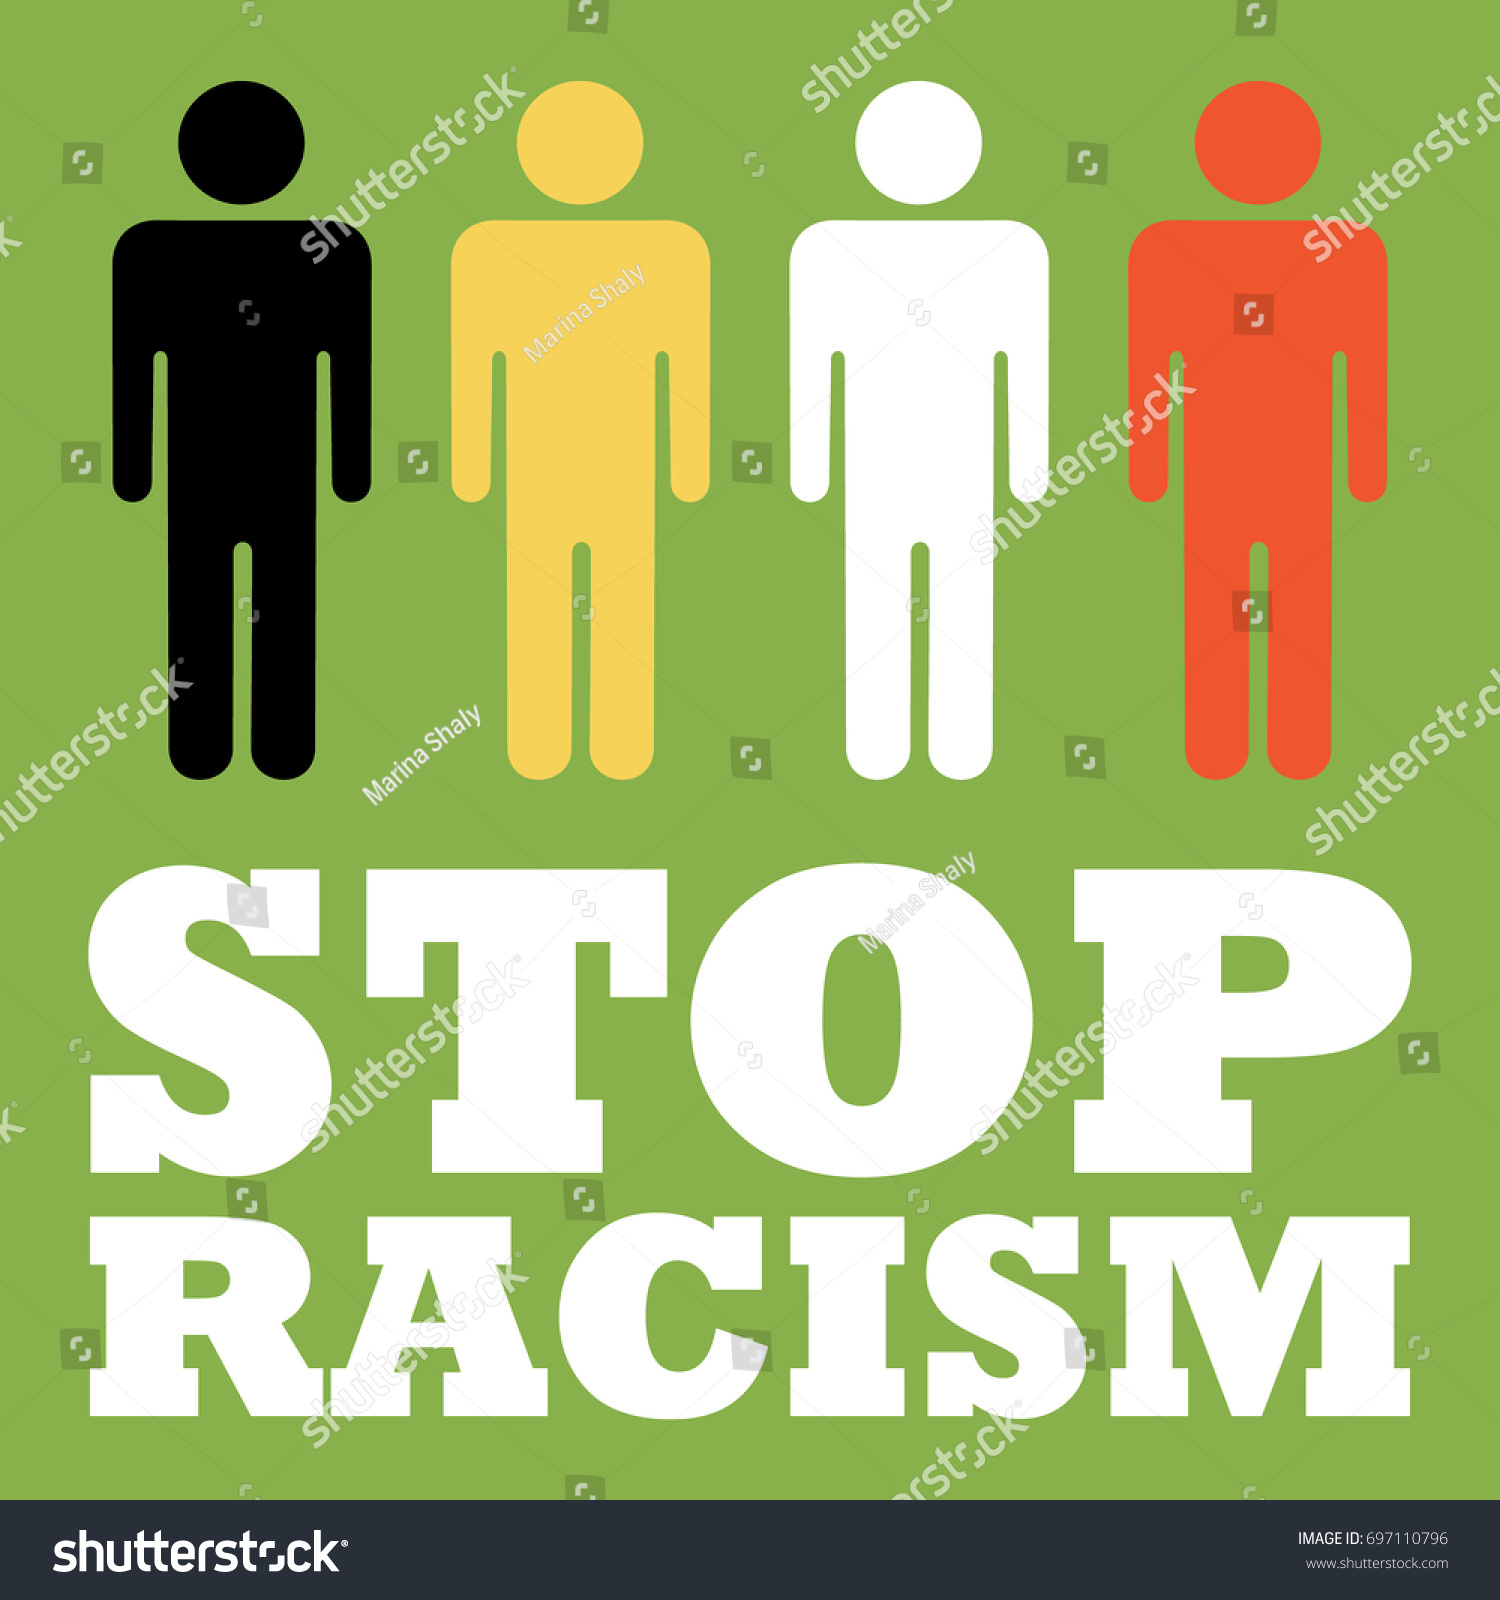 Stop racism poster skin color human stock vector 697110796 stop racism poster with skin color in human vector illustration flat style abstract biocorpaavc Images